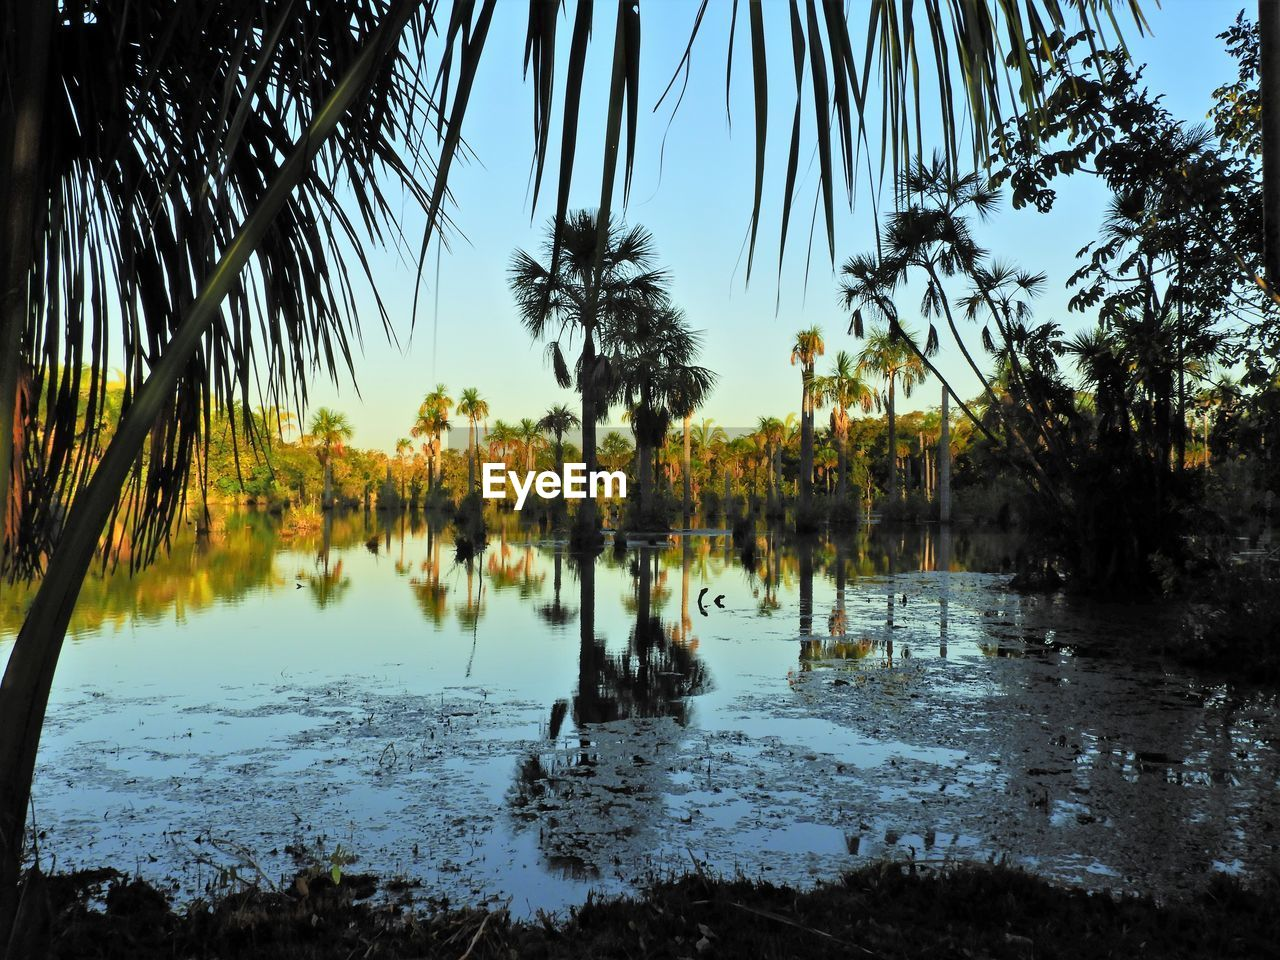 tree, water, plant, tropical climate, tranquility, beauty in nature, palm tree, sky, nature, no people, tranquil scene, growth, reflection, scenics - nature, lake, day, outdoors, idyllic, non-urban scene